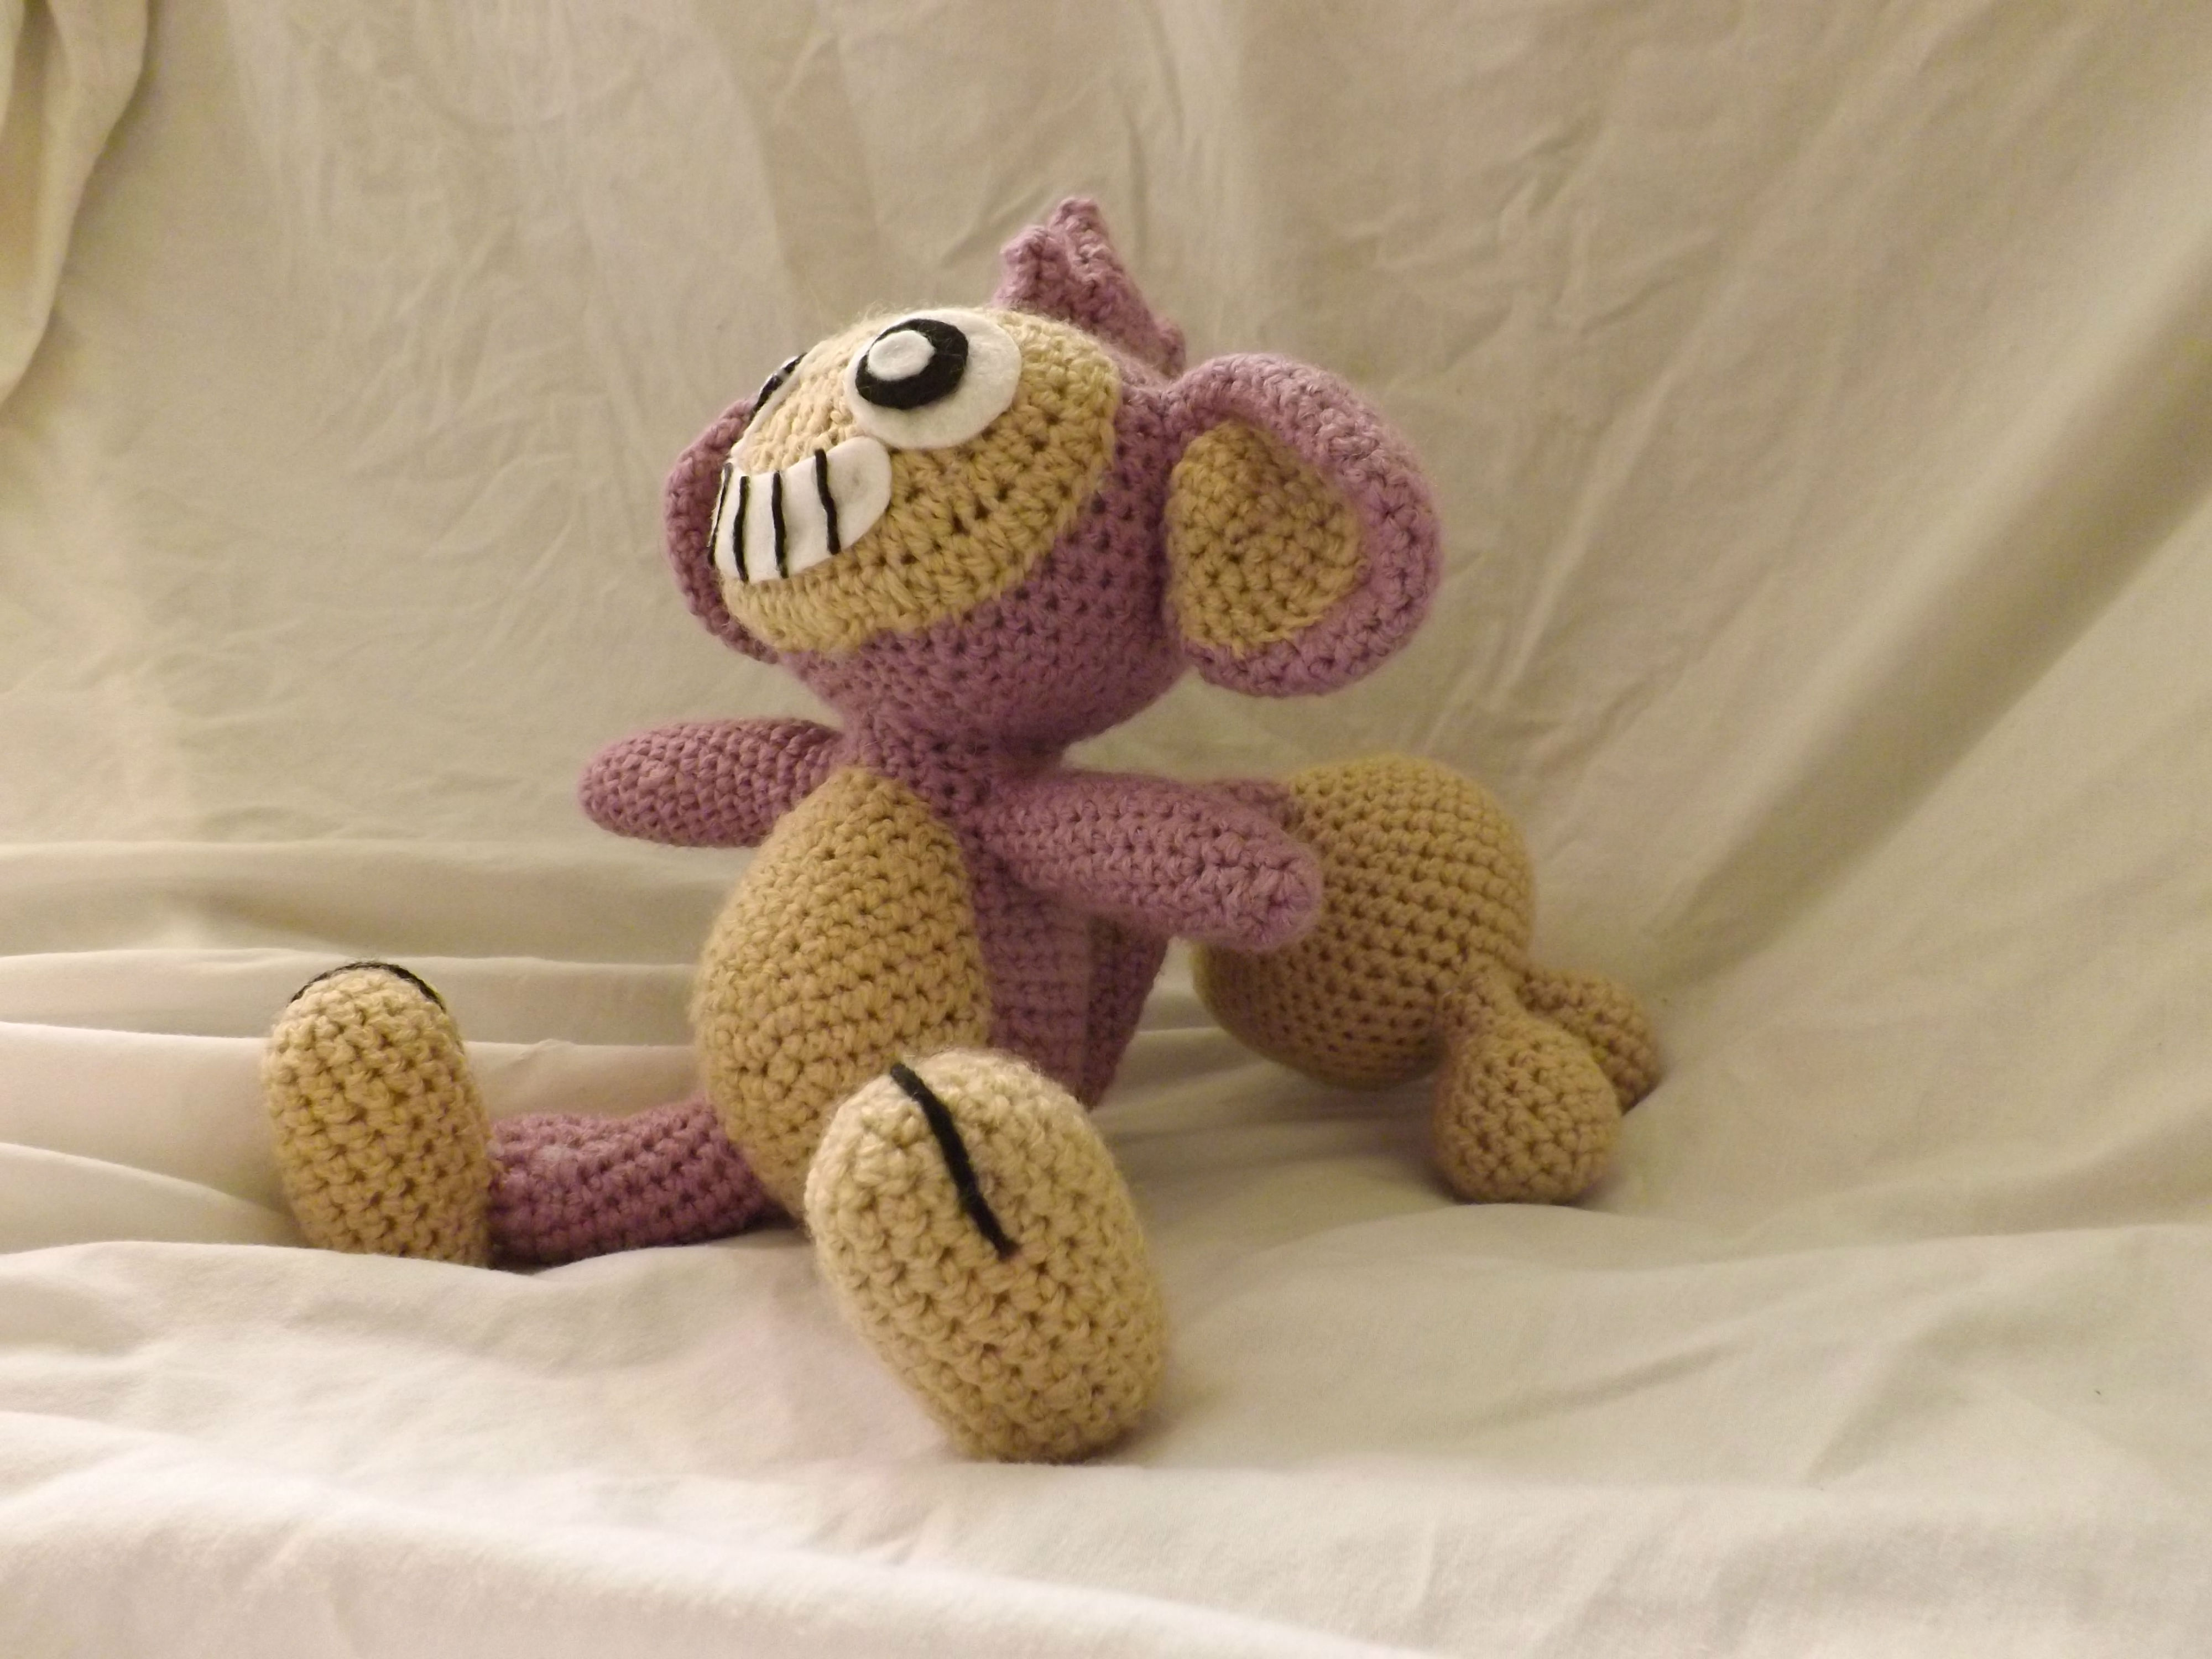 Crochet Aipom By PokeCrochet for Pokémon Day!